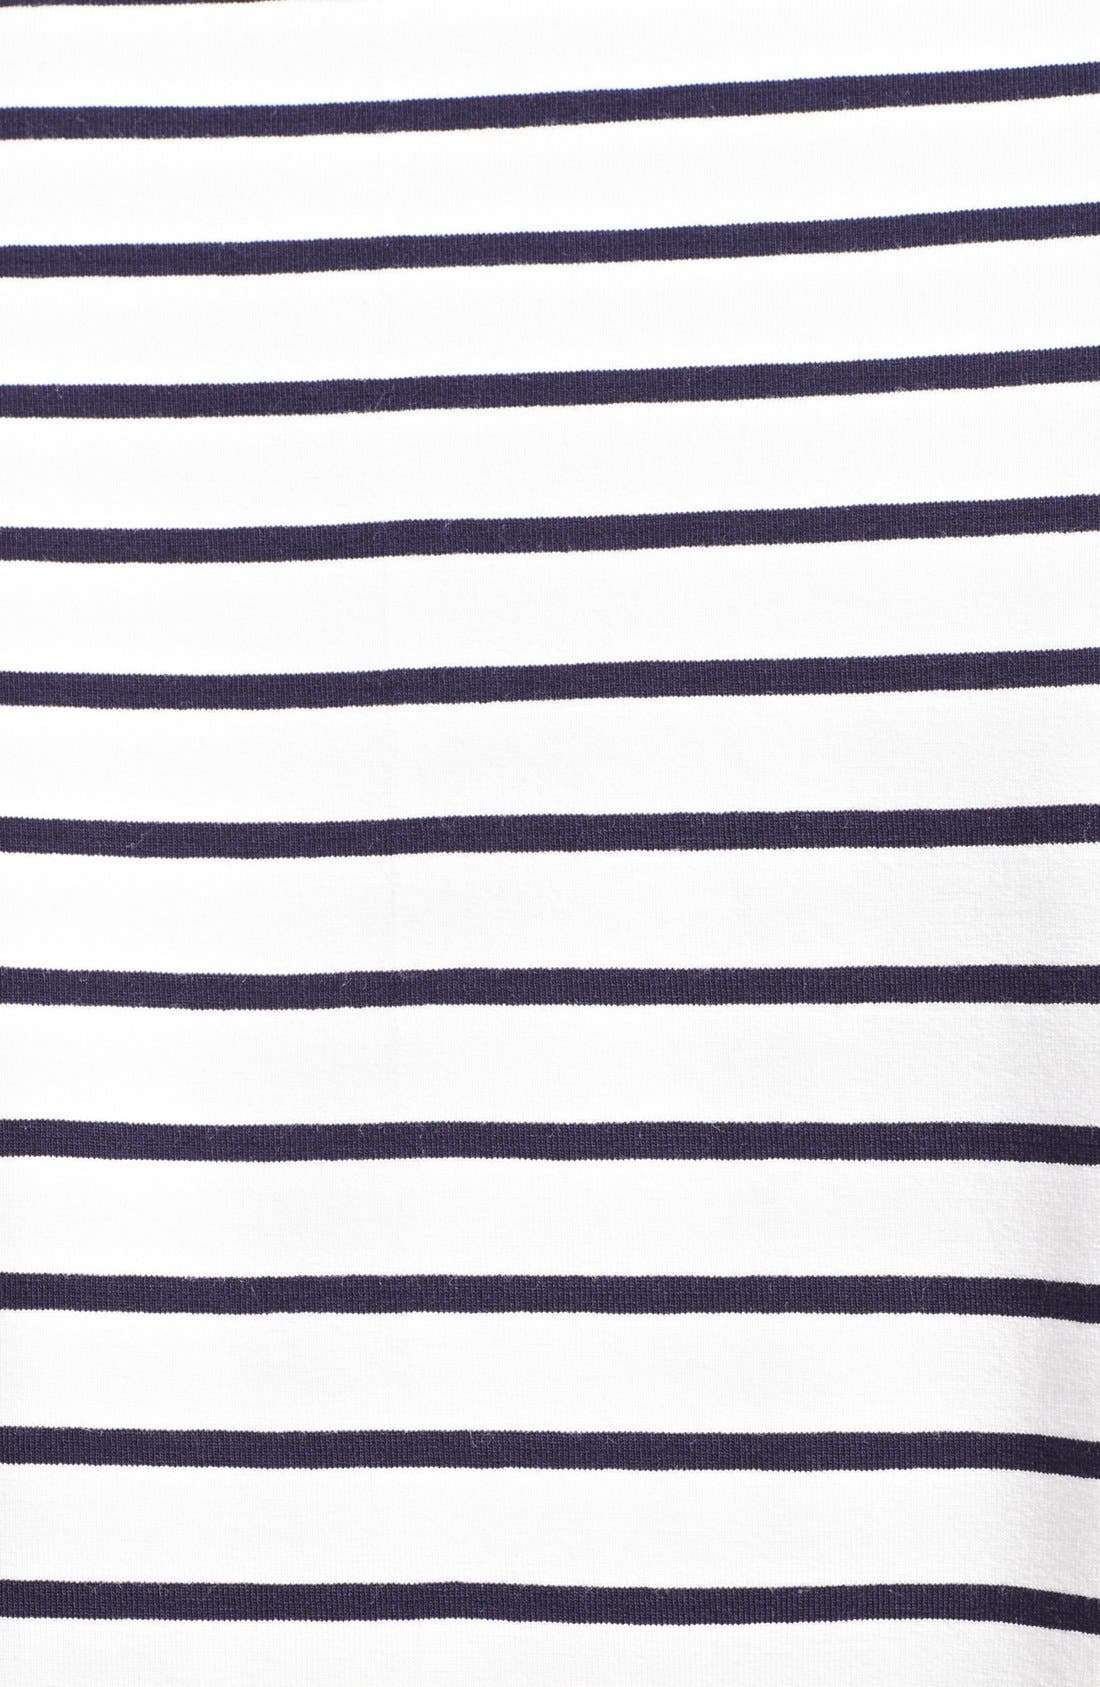 Alternate Image 3  - Max Mara 'Minetta' Stripe Jersey Top